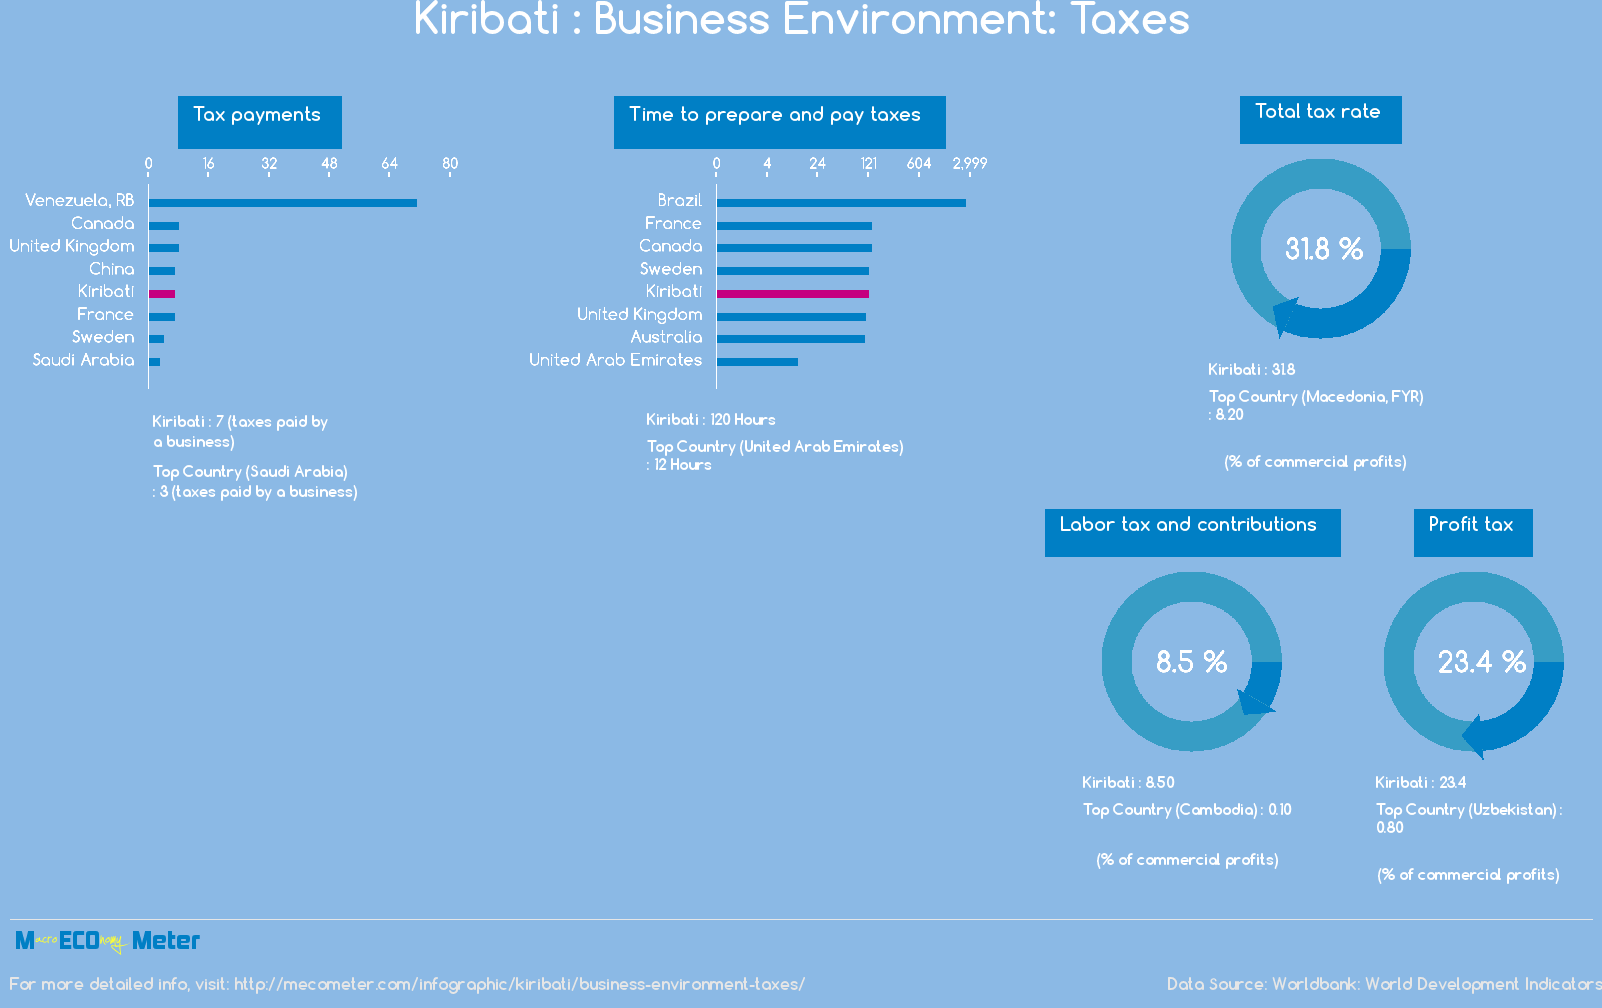 Kiribati : Business Environment: Taxes